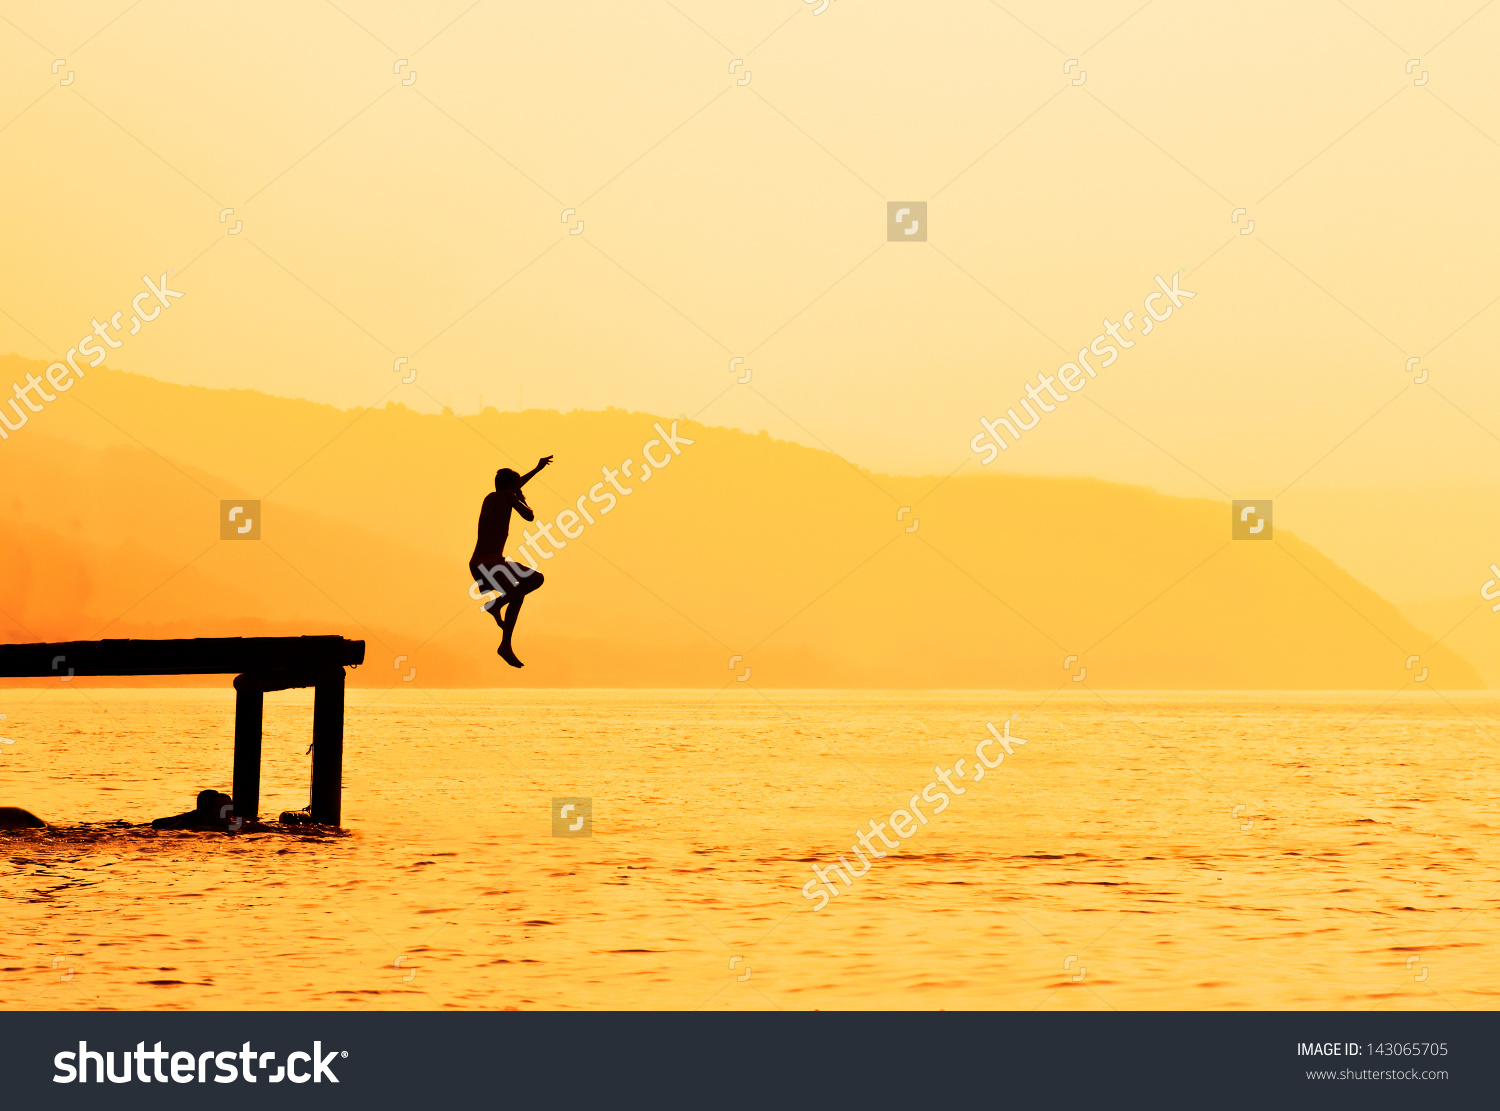 Silhouette Of Kids Jumping From River Dock, At Sunset. Stock Photo.